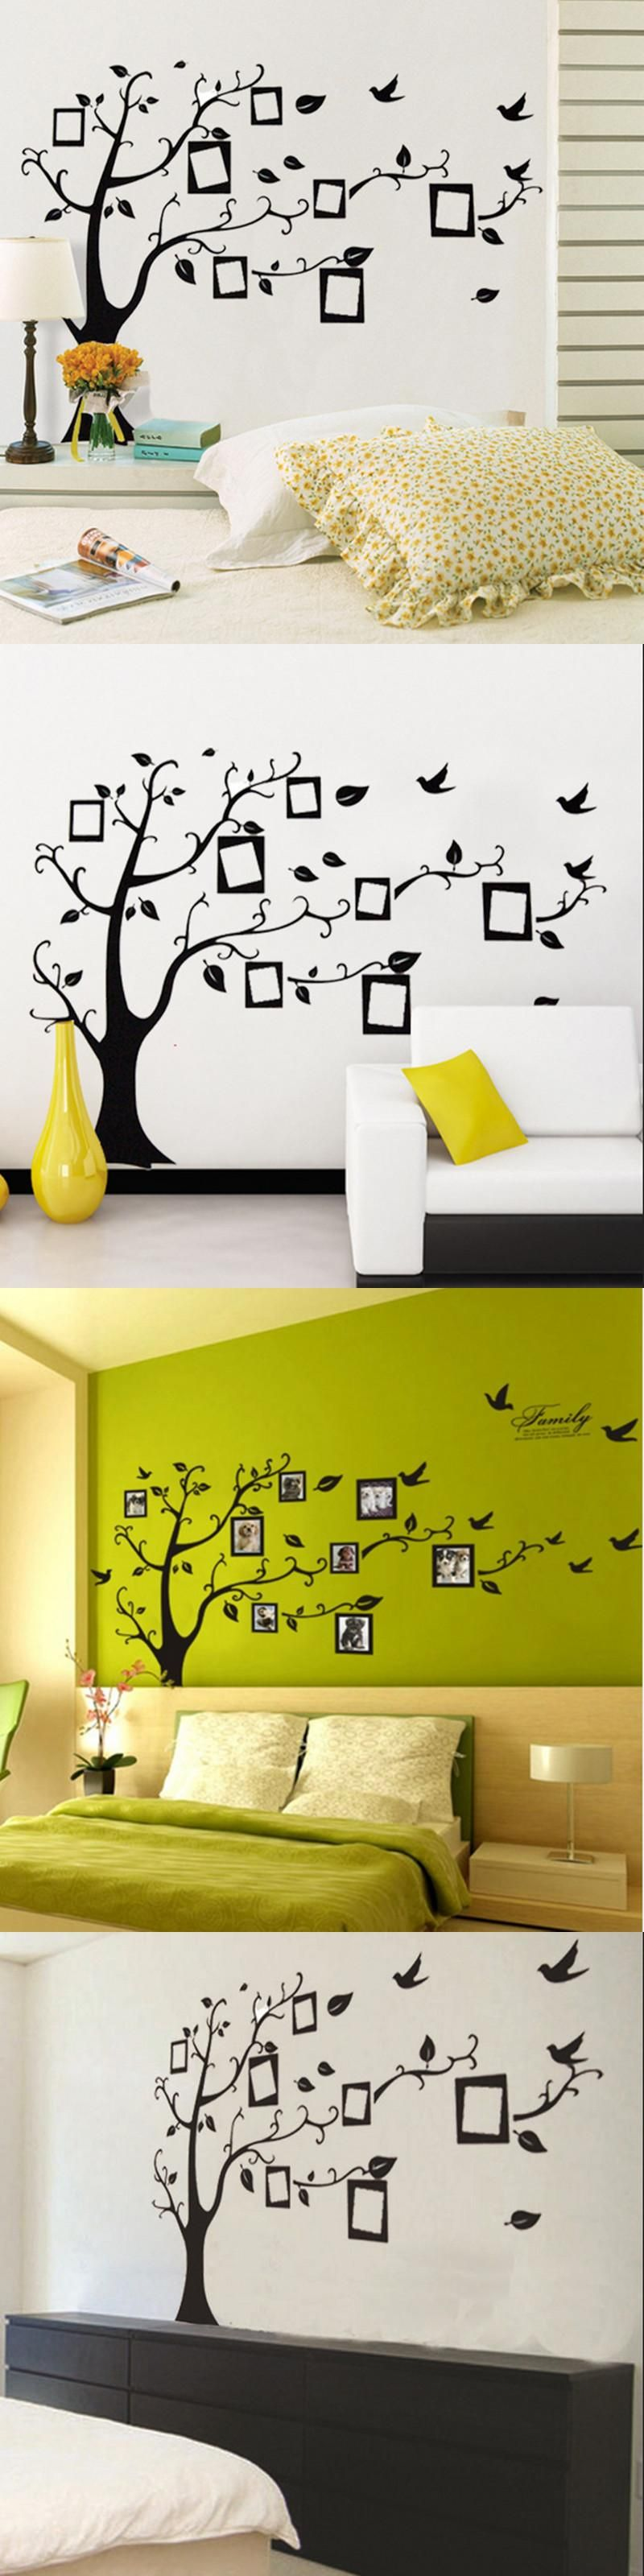 DIY Wall Sticker Black Photo Tree PVC Wall Stickers Decals Adhesive ...